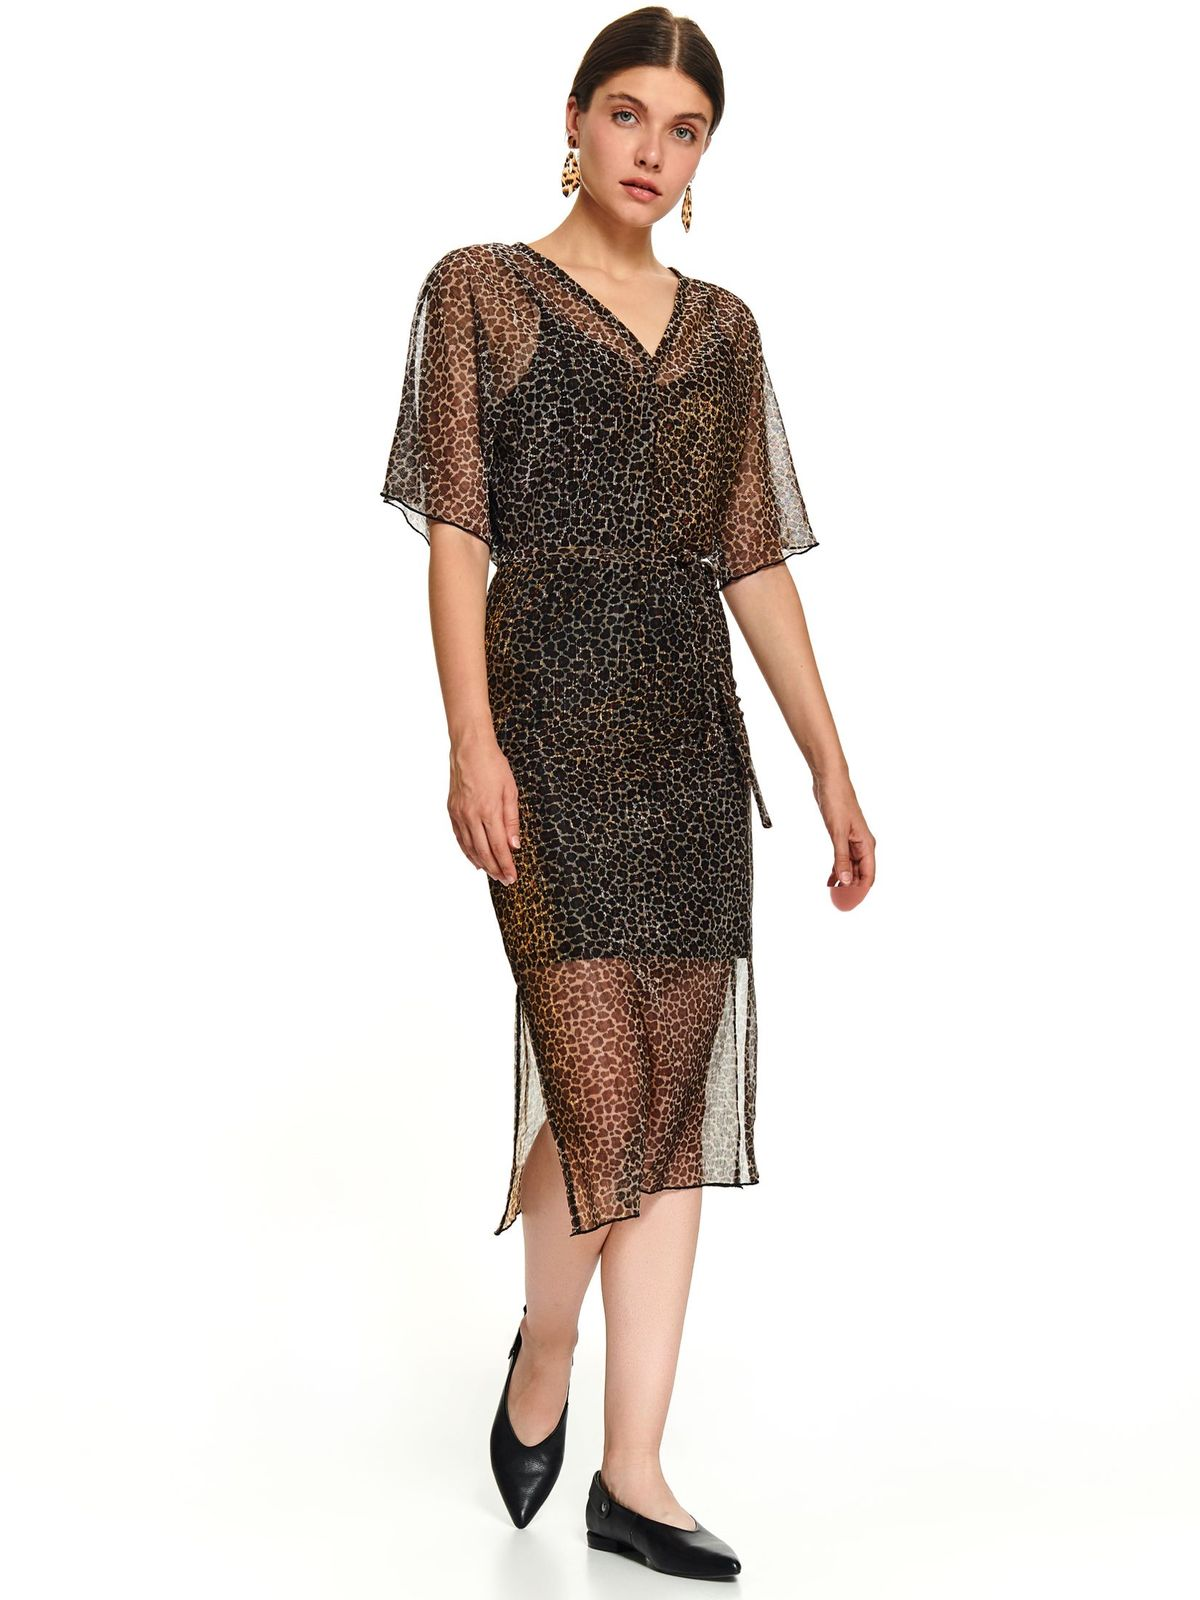 Black daily short cut dress with short sleeves airy fabric and detachable cord